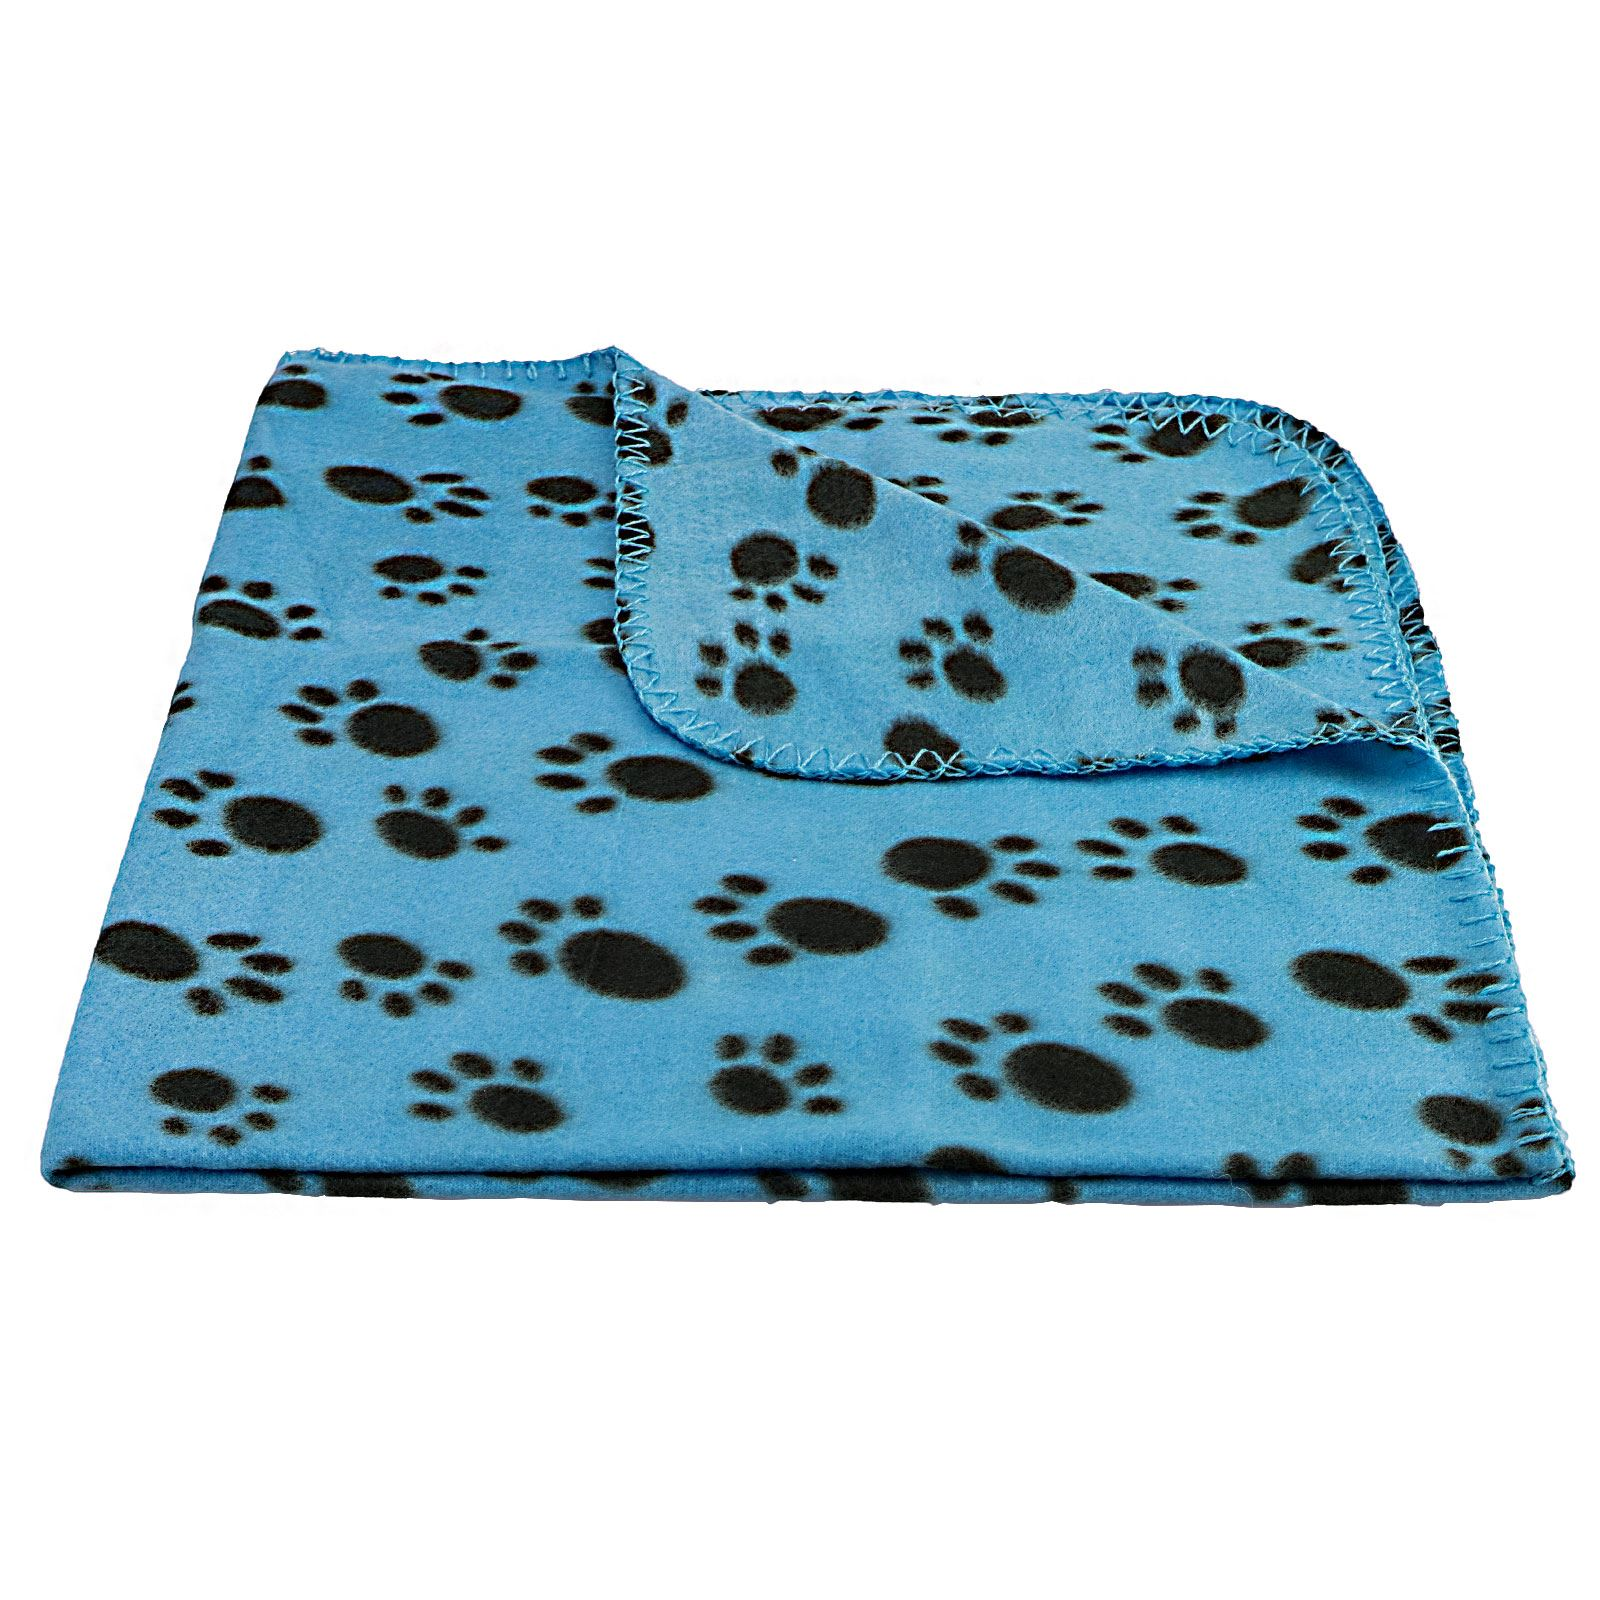 Pet Blanket Dogs Amp Puppy Cat Paw Print Soft Warm Fleece